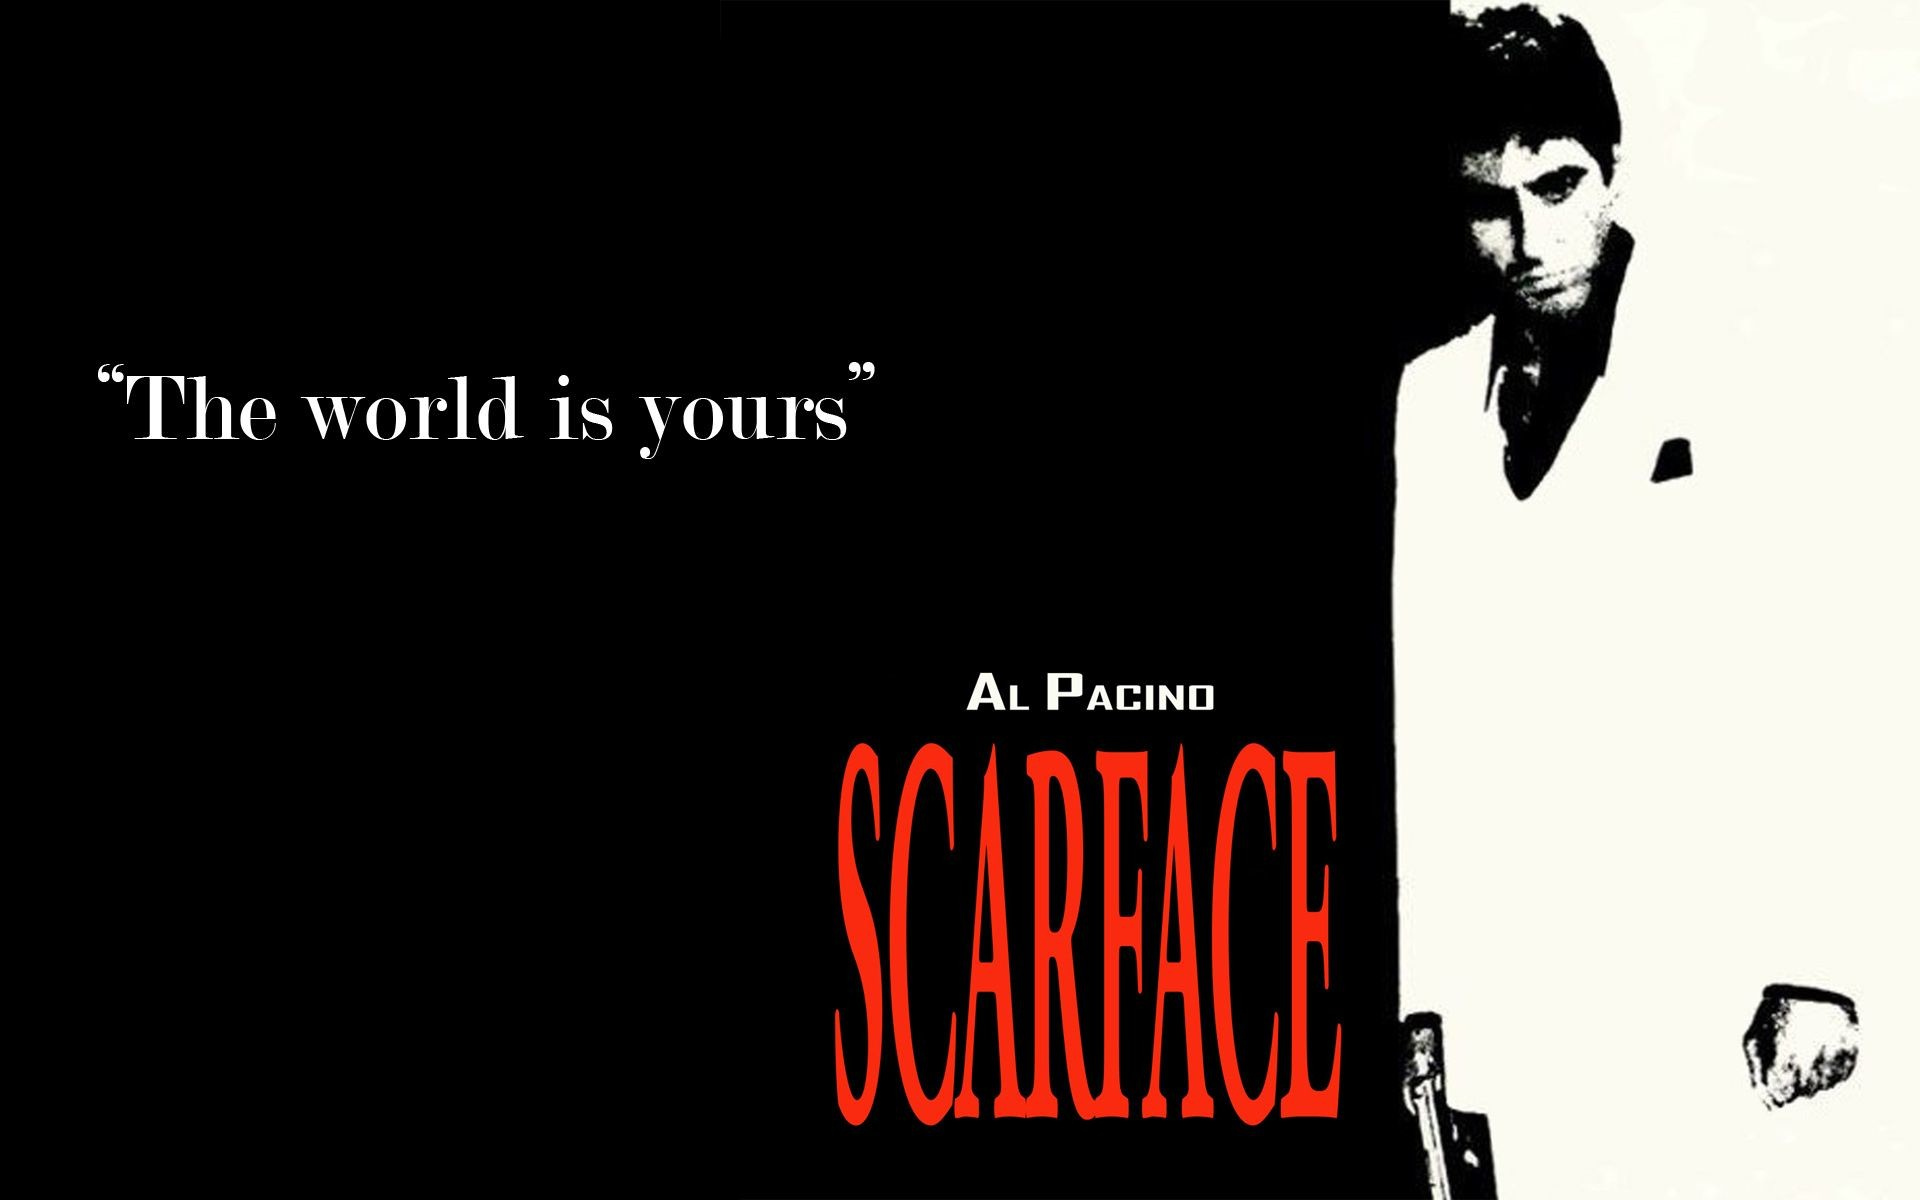 Scarface HD Wallpapers and Backgrounds